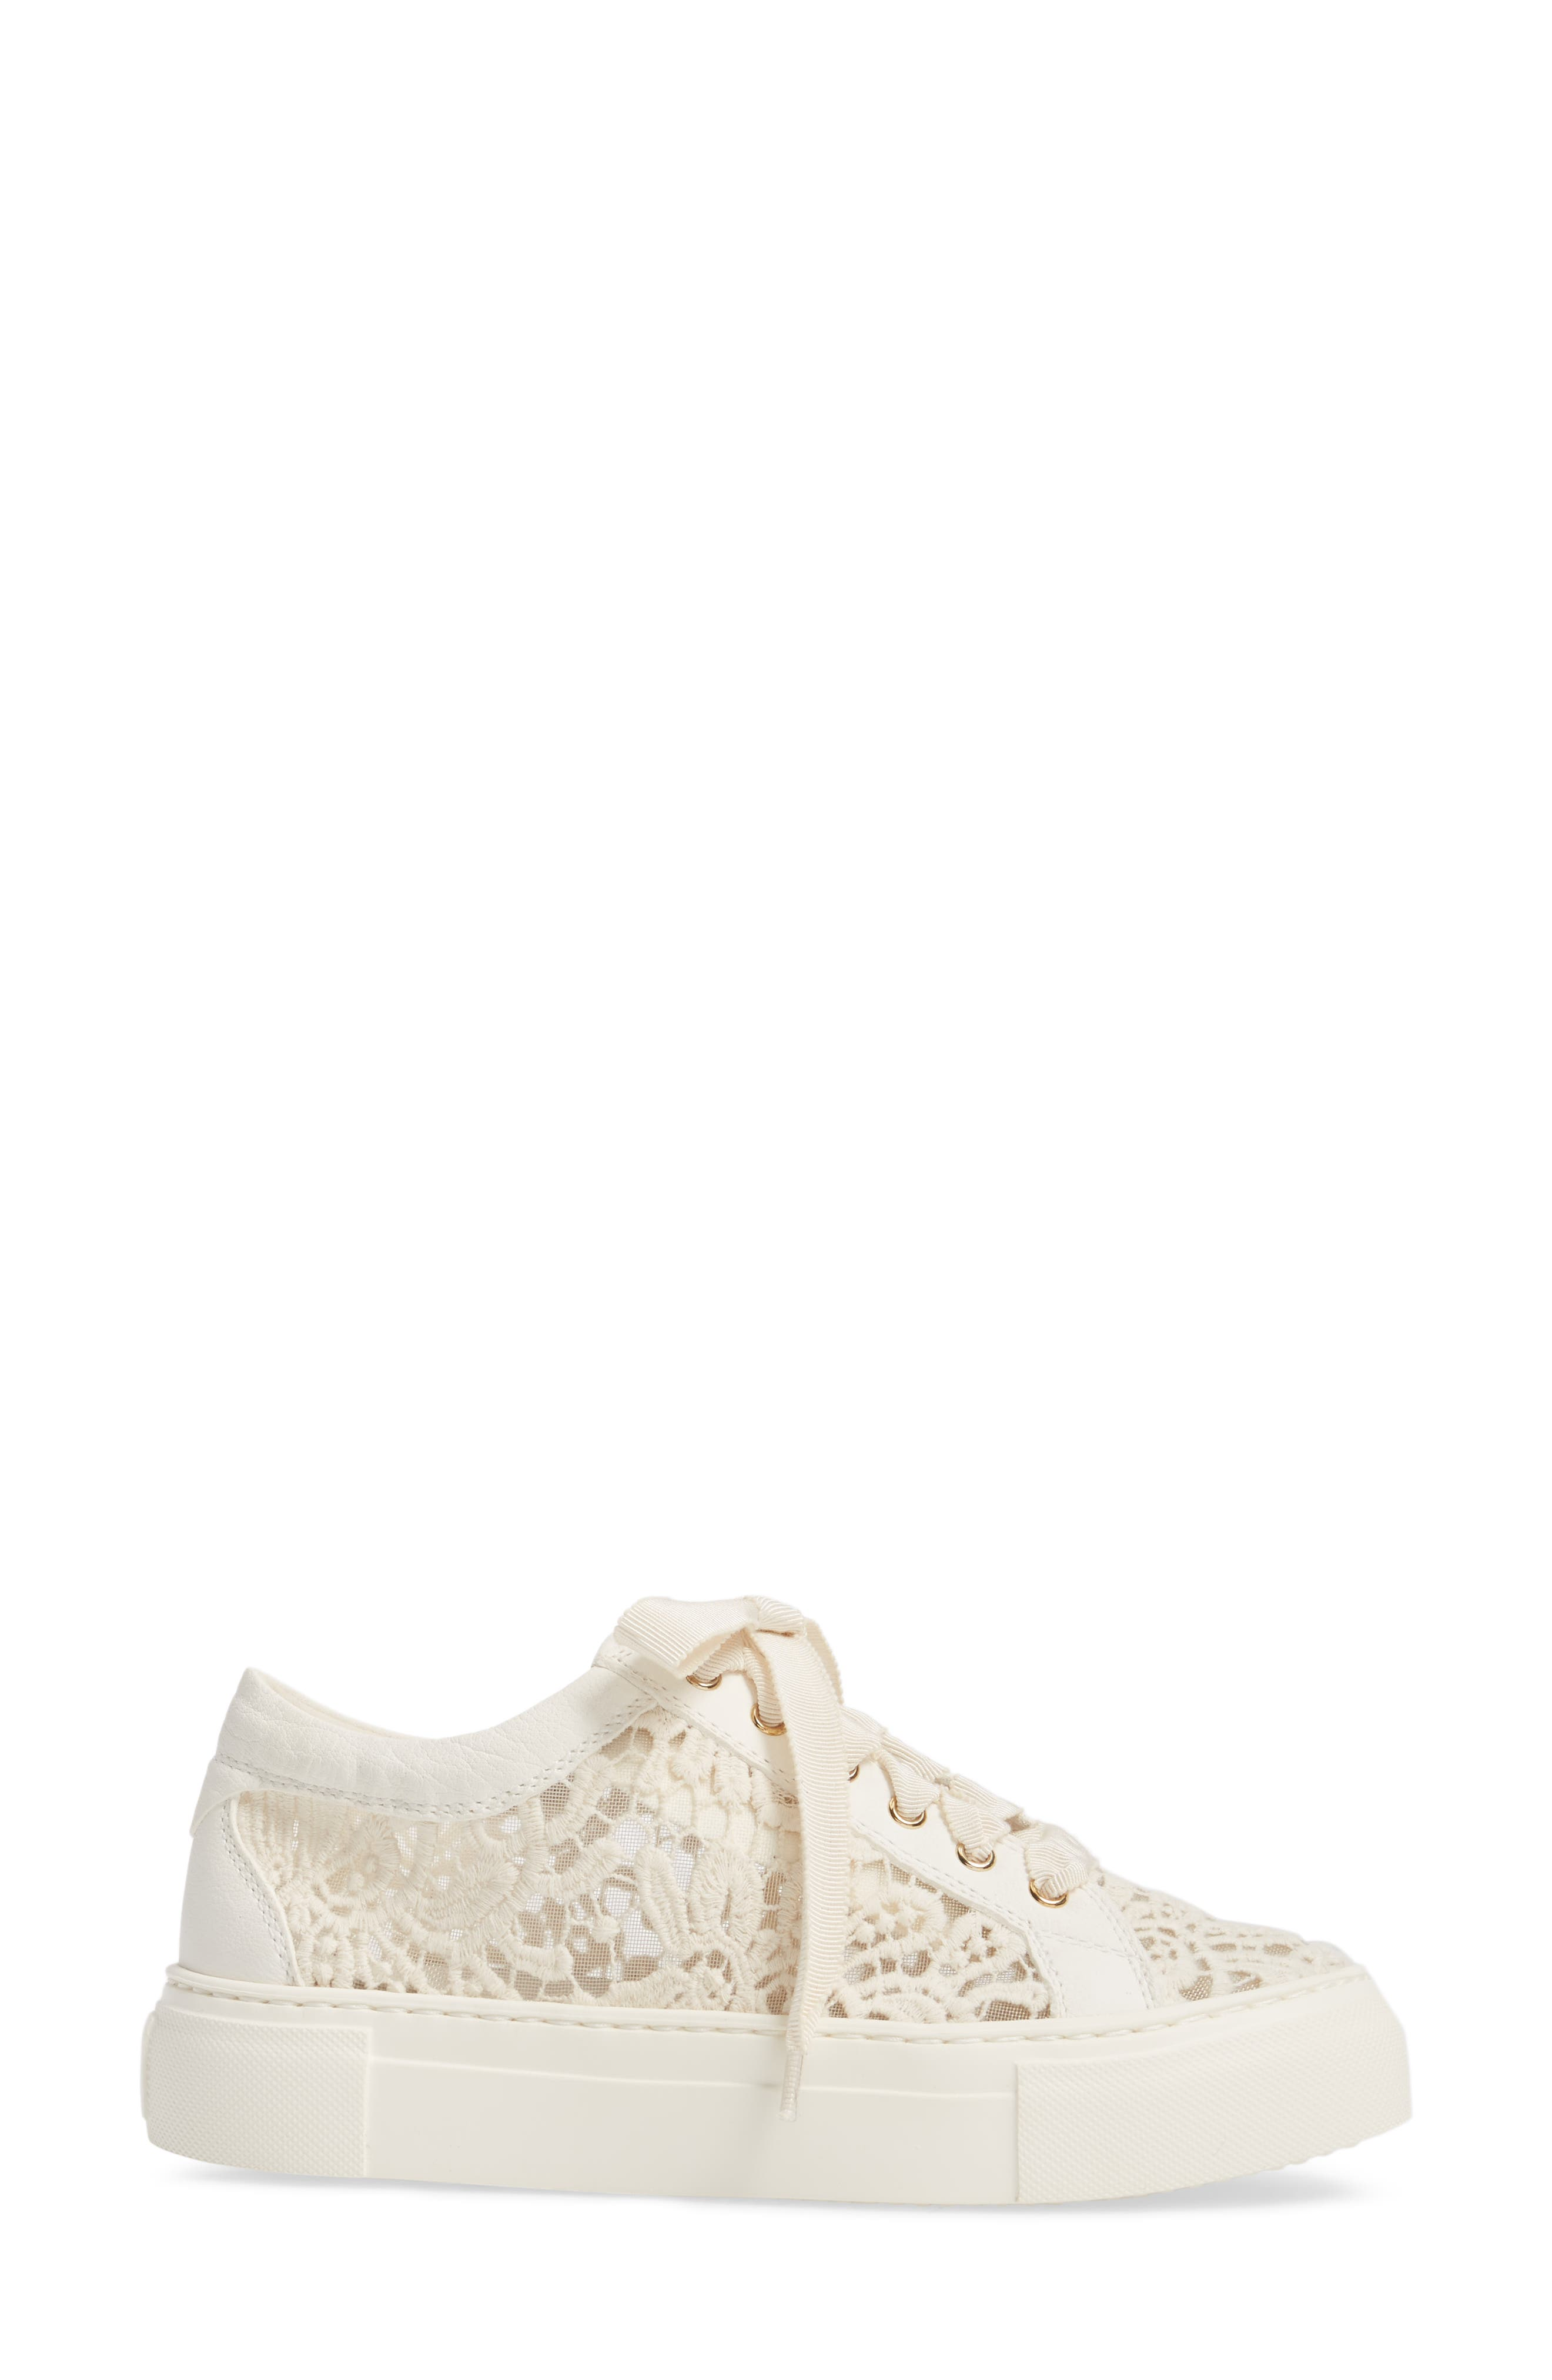 Embroidered Lace Sneaker,                             Alternate thumbnail 3, color,                             101